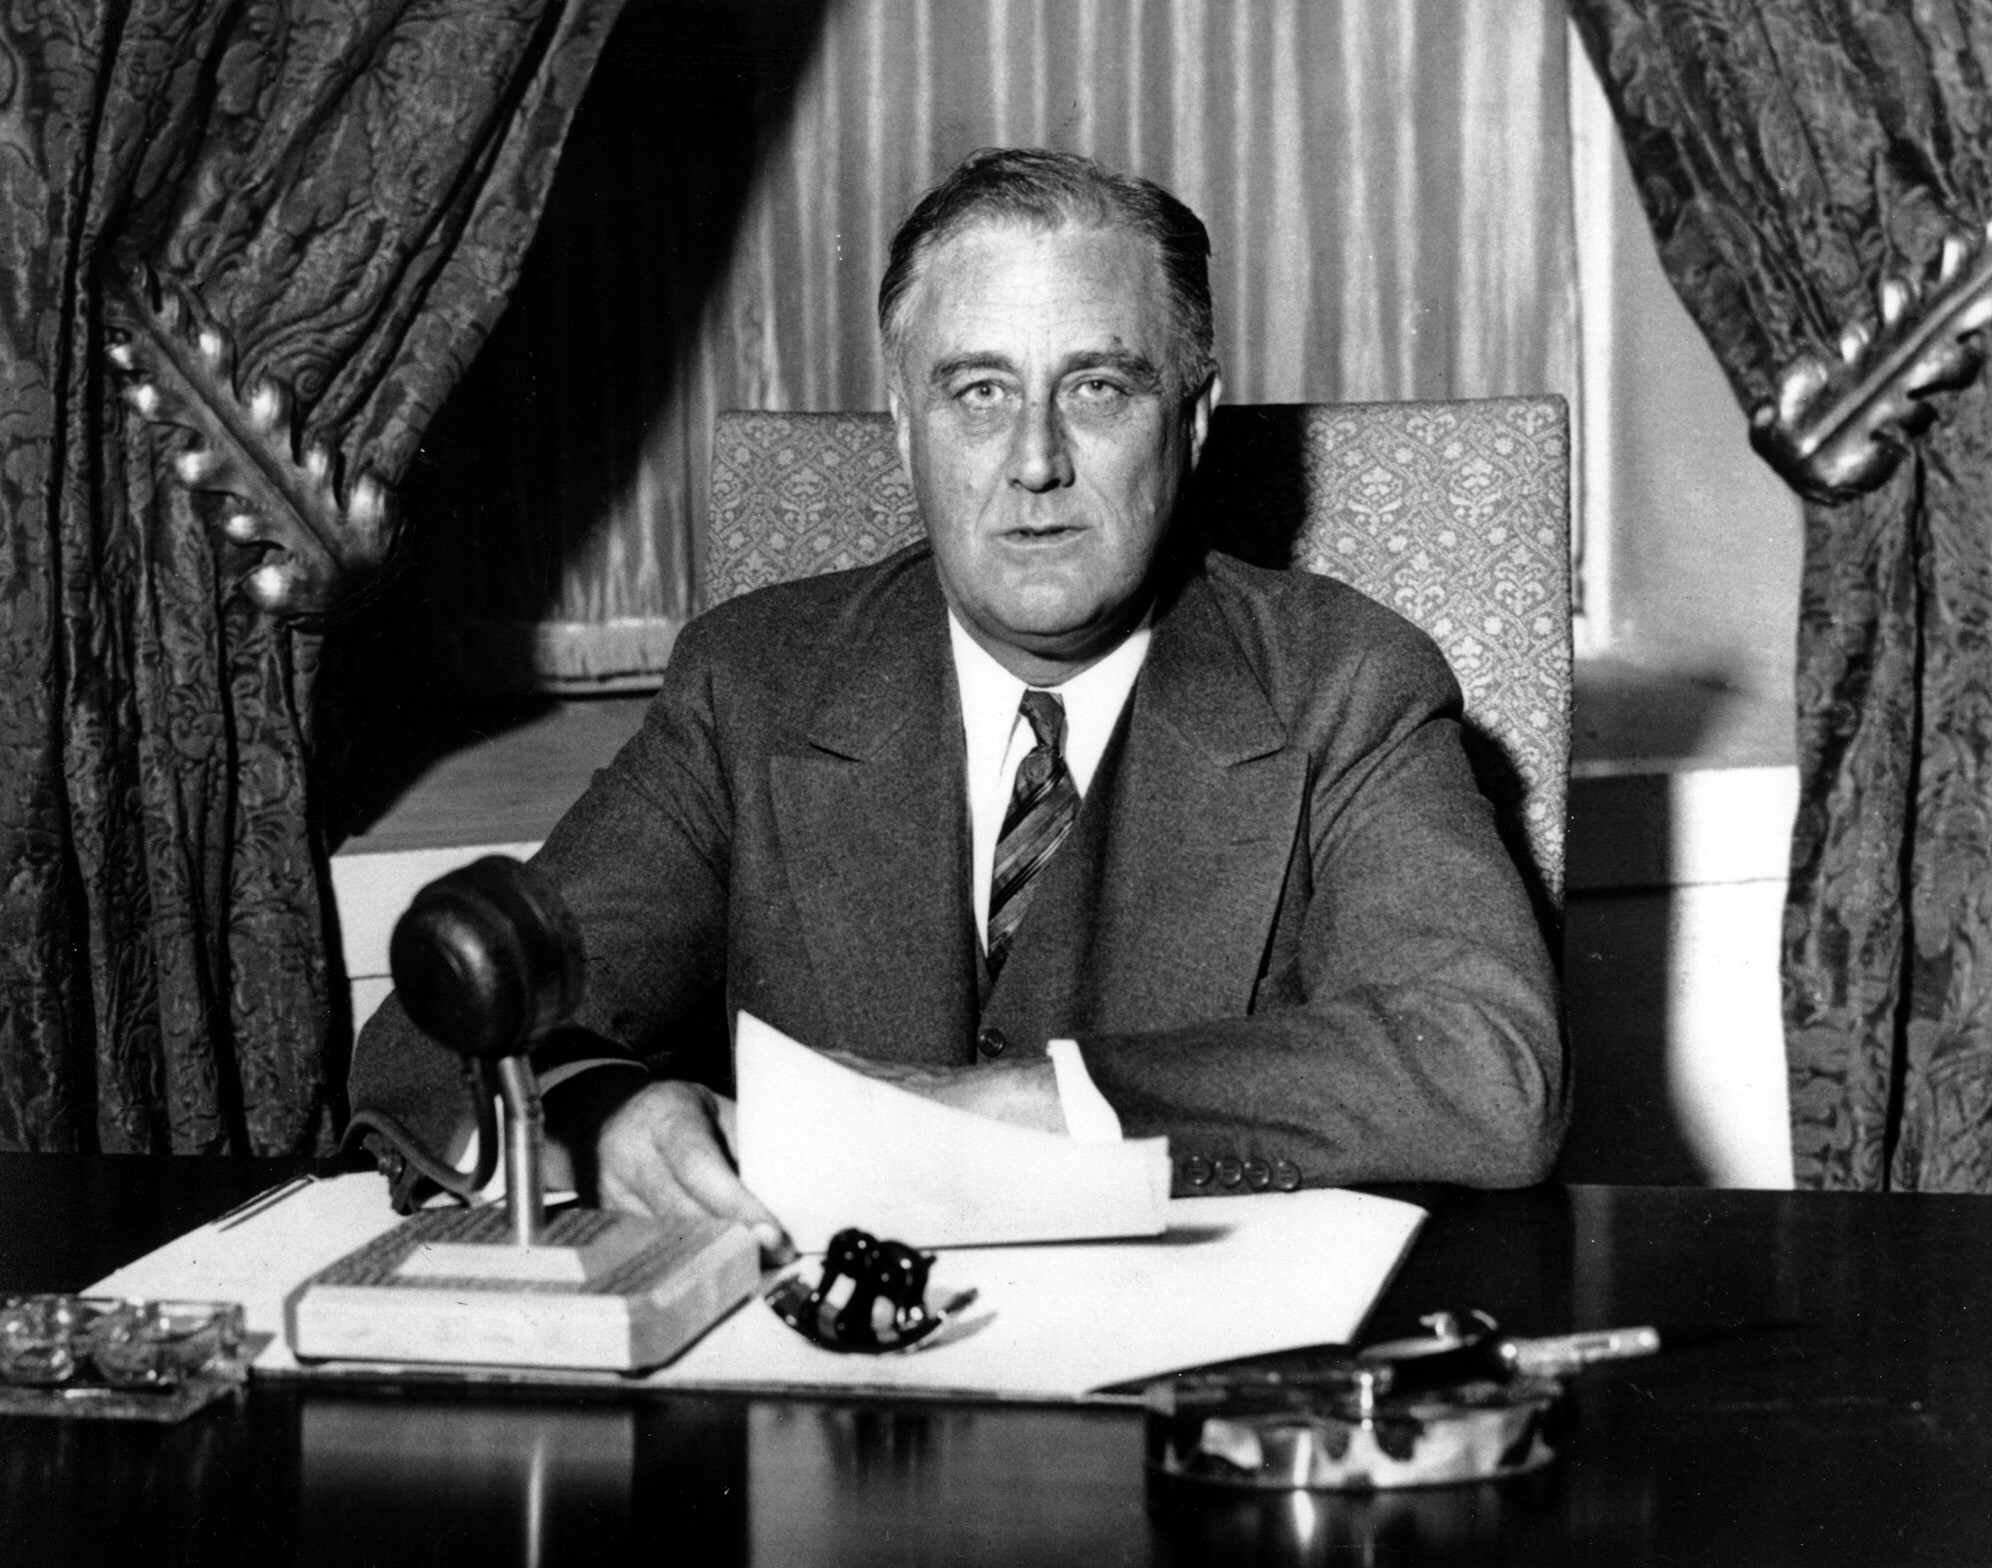 FILE -- President Franklin D. Roosevelt prepares to begin his first fireside chat to the American people in this March 12, 1933 file photo. Speaking to the nation on radio from the White House in Washington, Roosevelt explained in simple langauge the measures he was taking to solidify the nation's shaky banking system. Roosevelt had been in office less than 100 days. (AP Photo/File) ORG XMIT: WX30